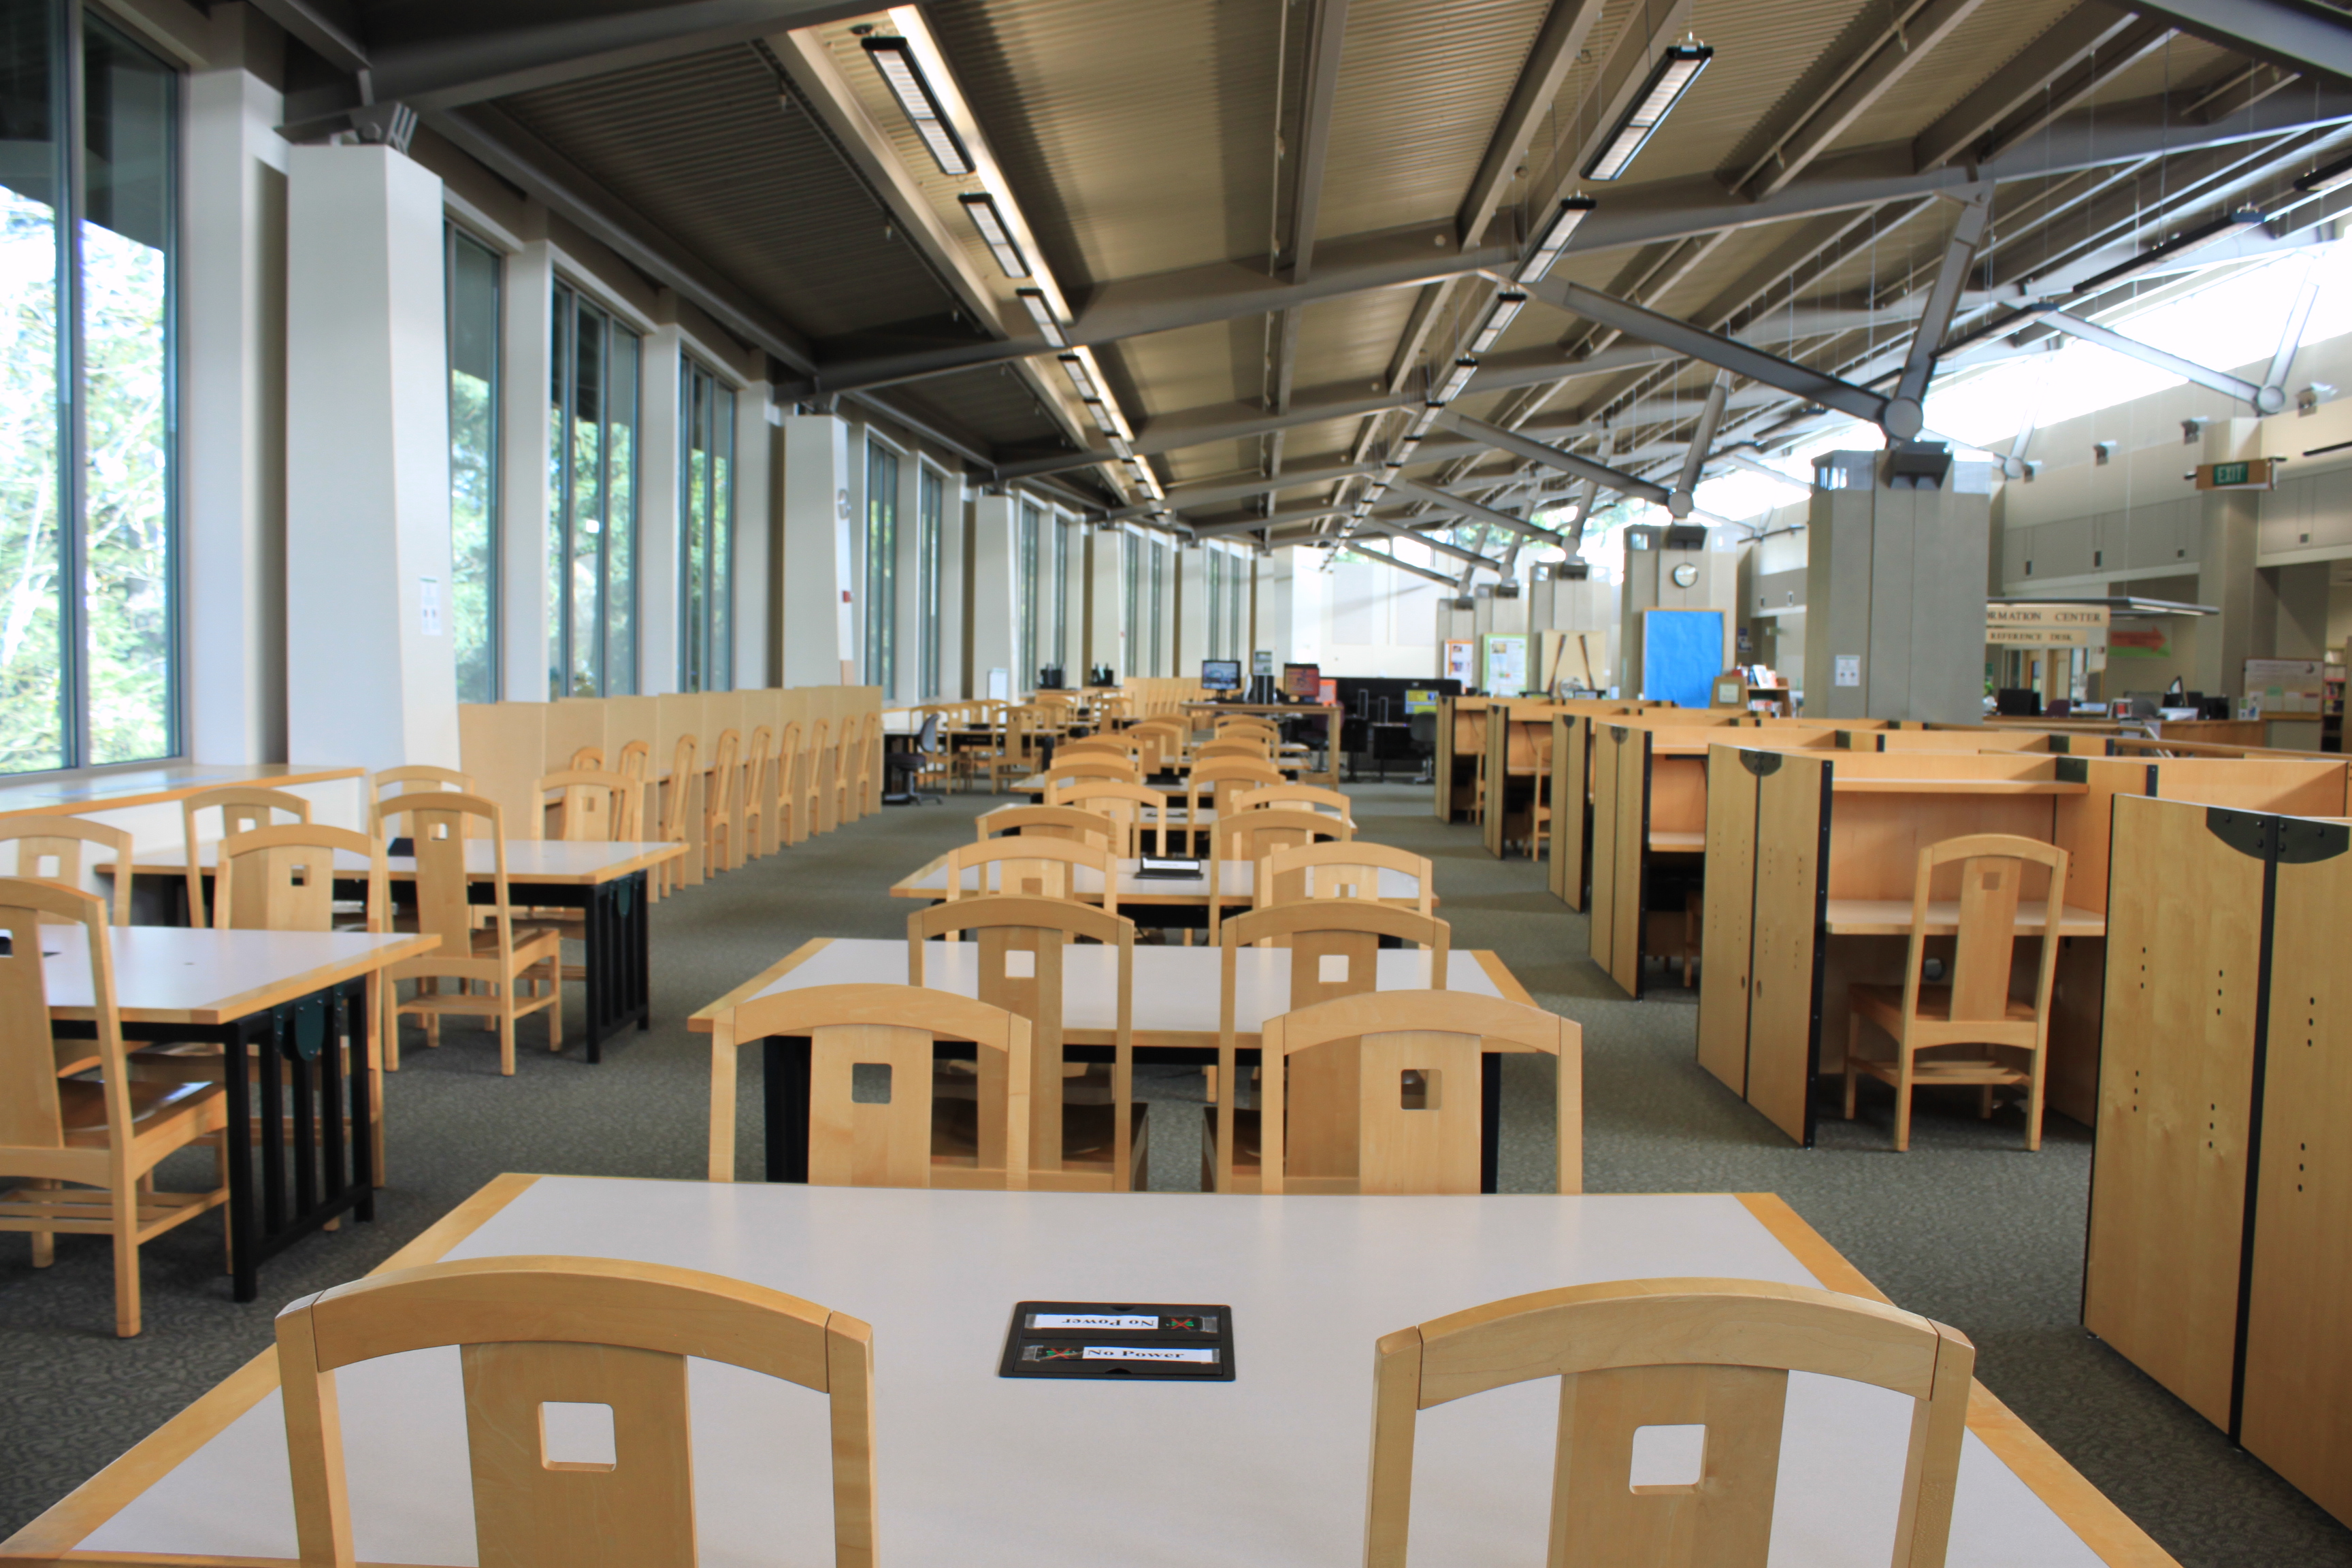 HL second floor - study tables